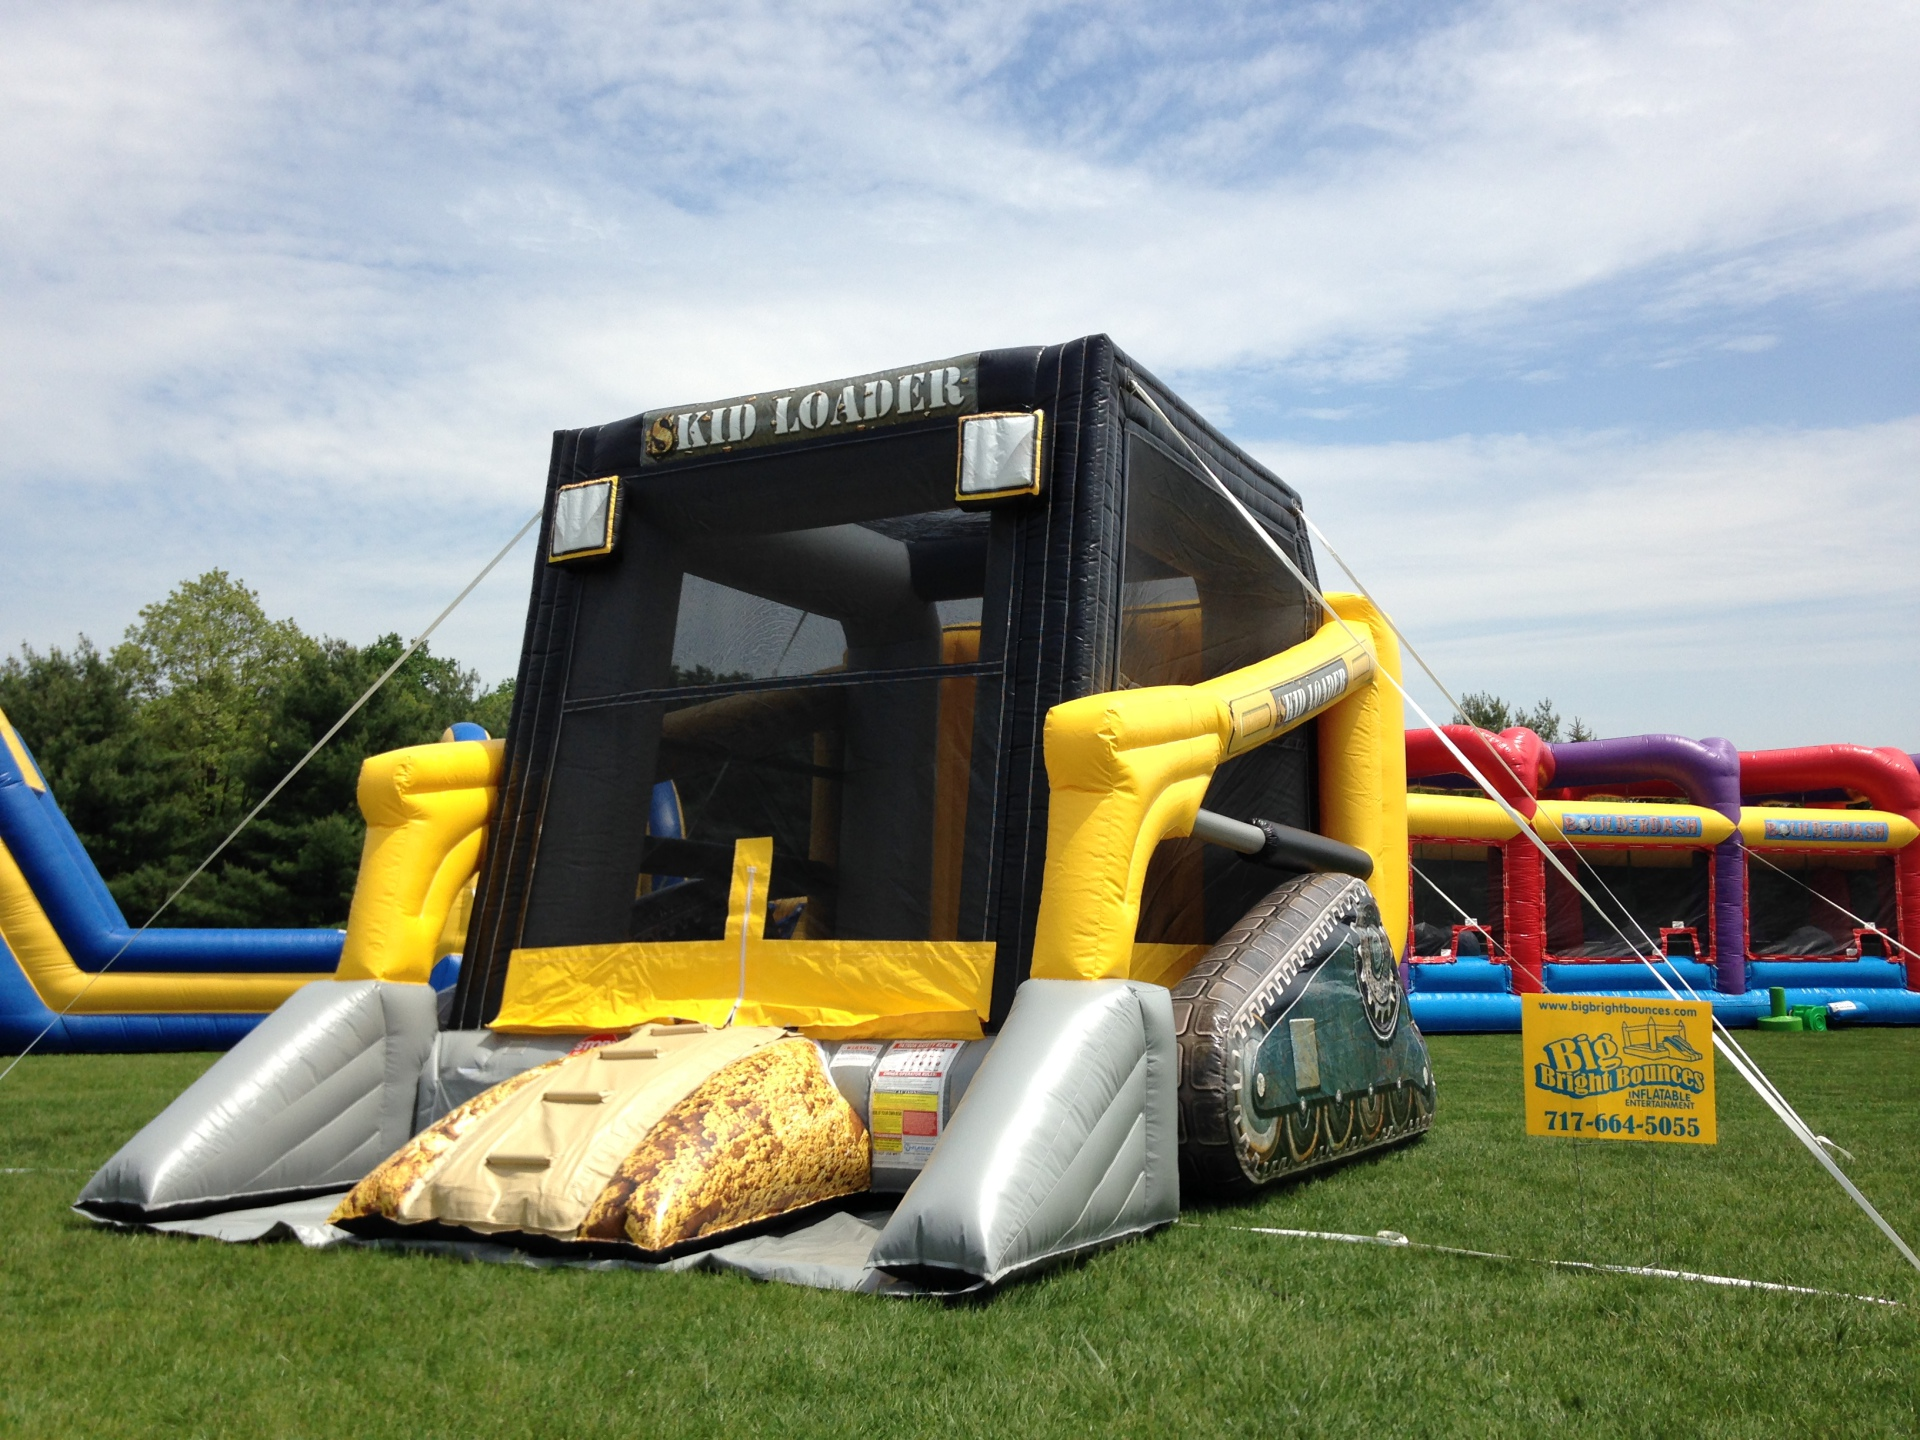 Inflatable Skid Loader Bounce House